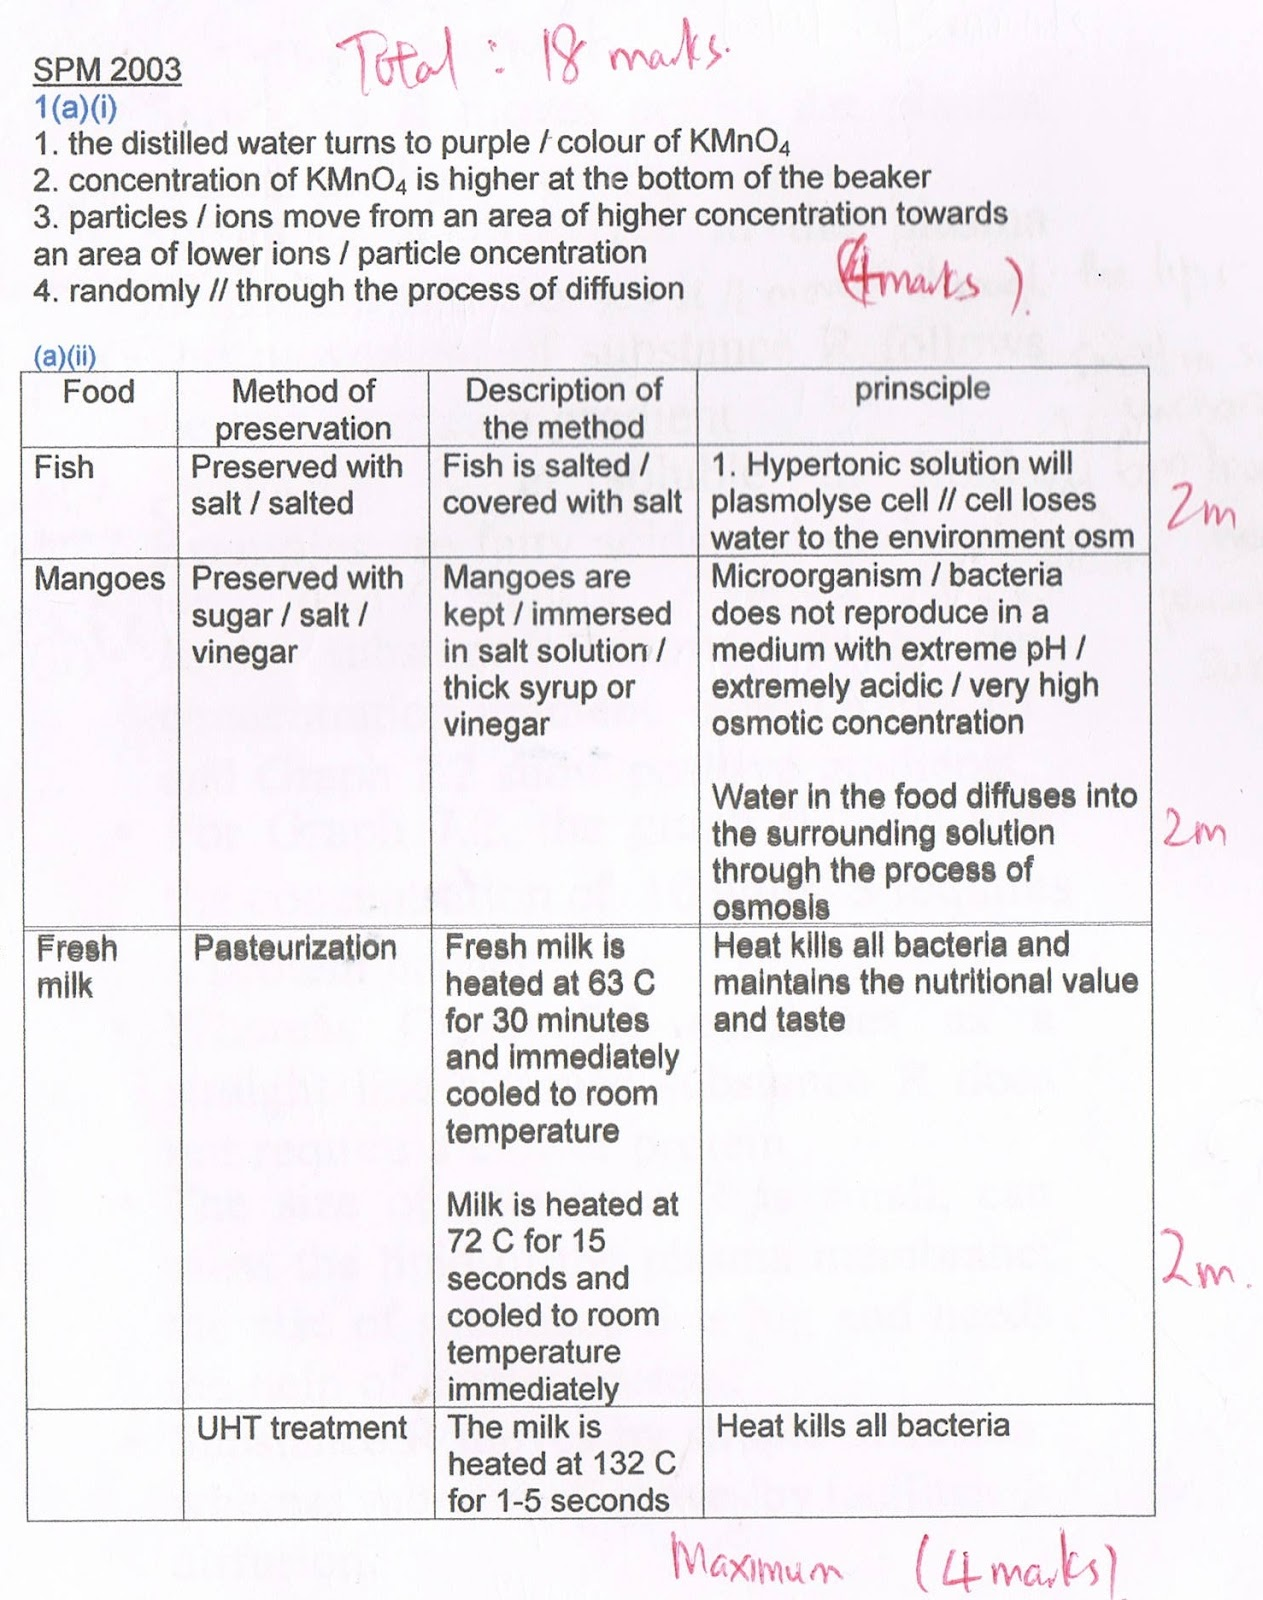 essay upon econ the right answers section 3